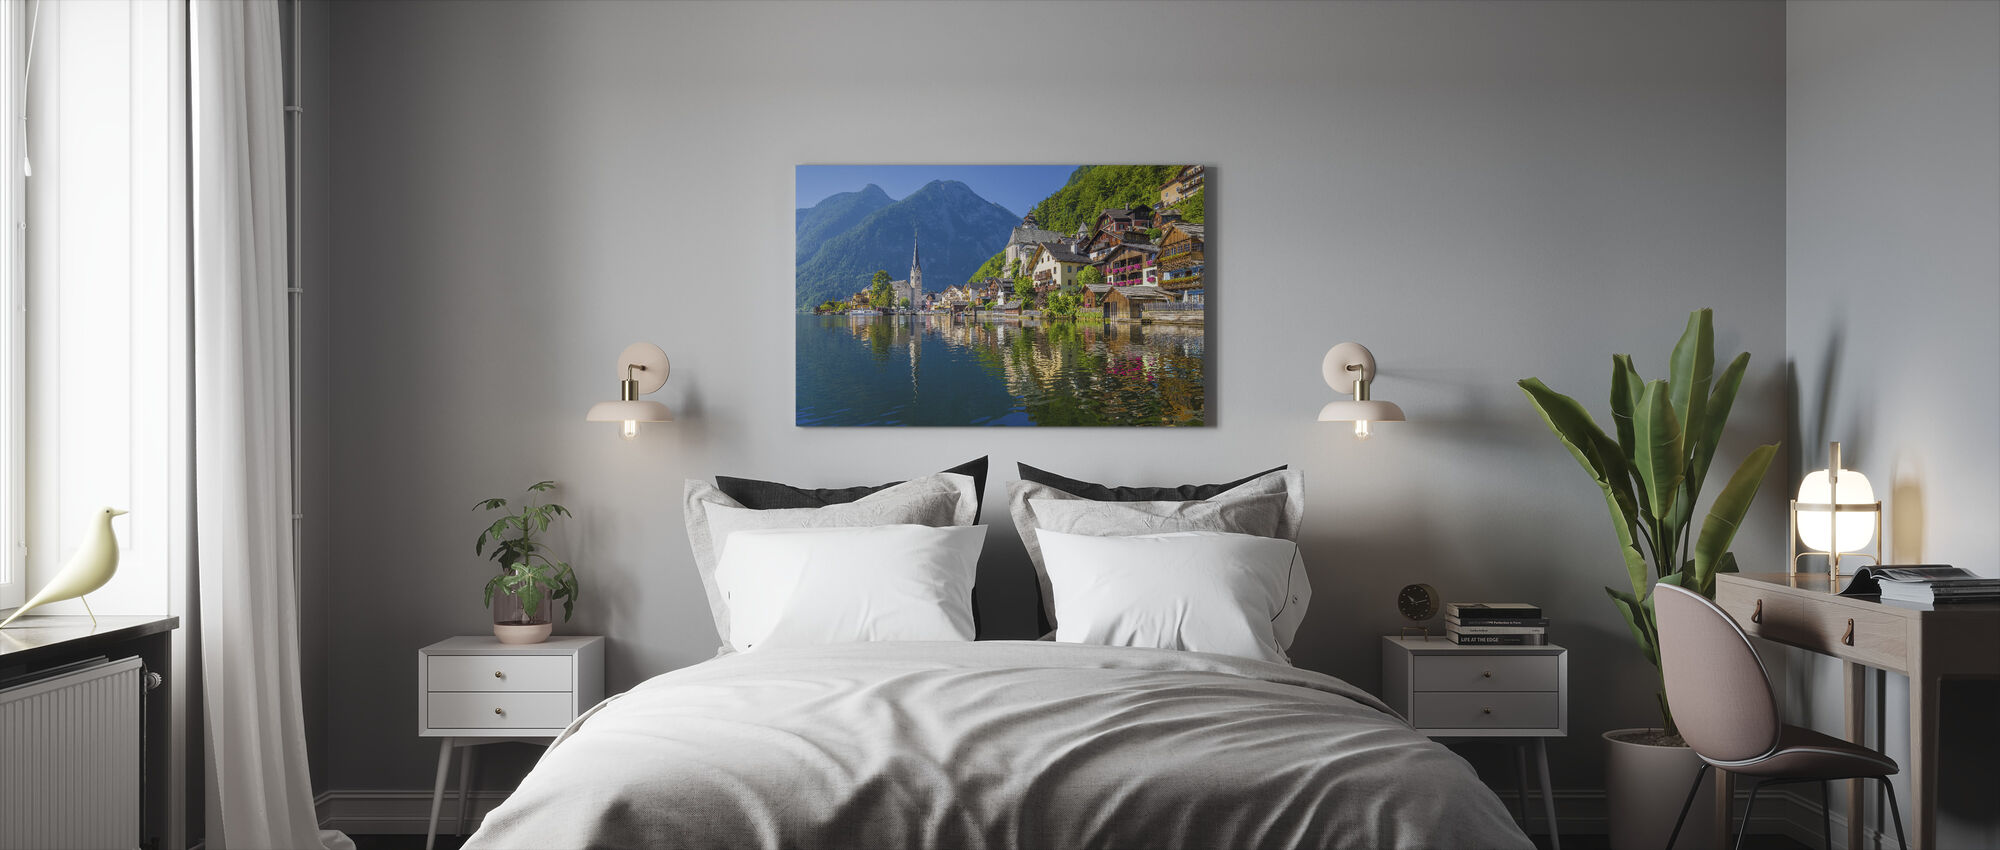 Mountain Village in the Alps - Canvas print - Bedroom